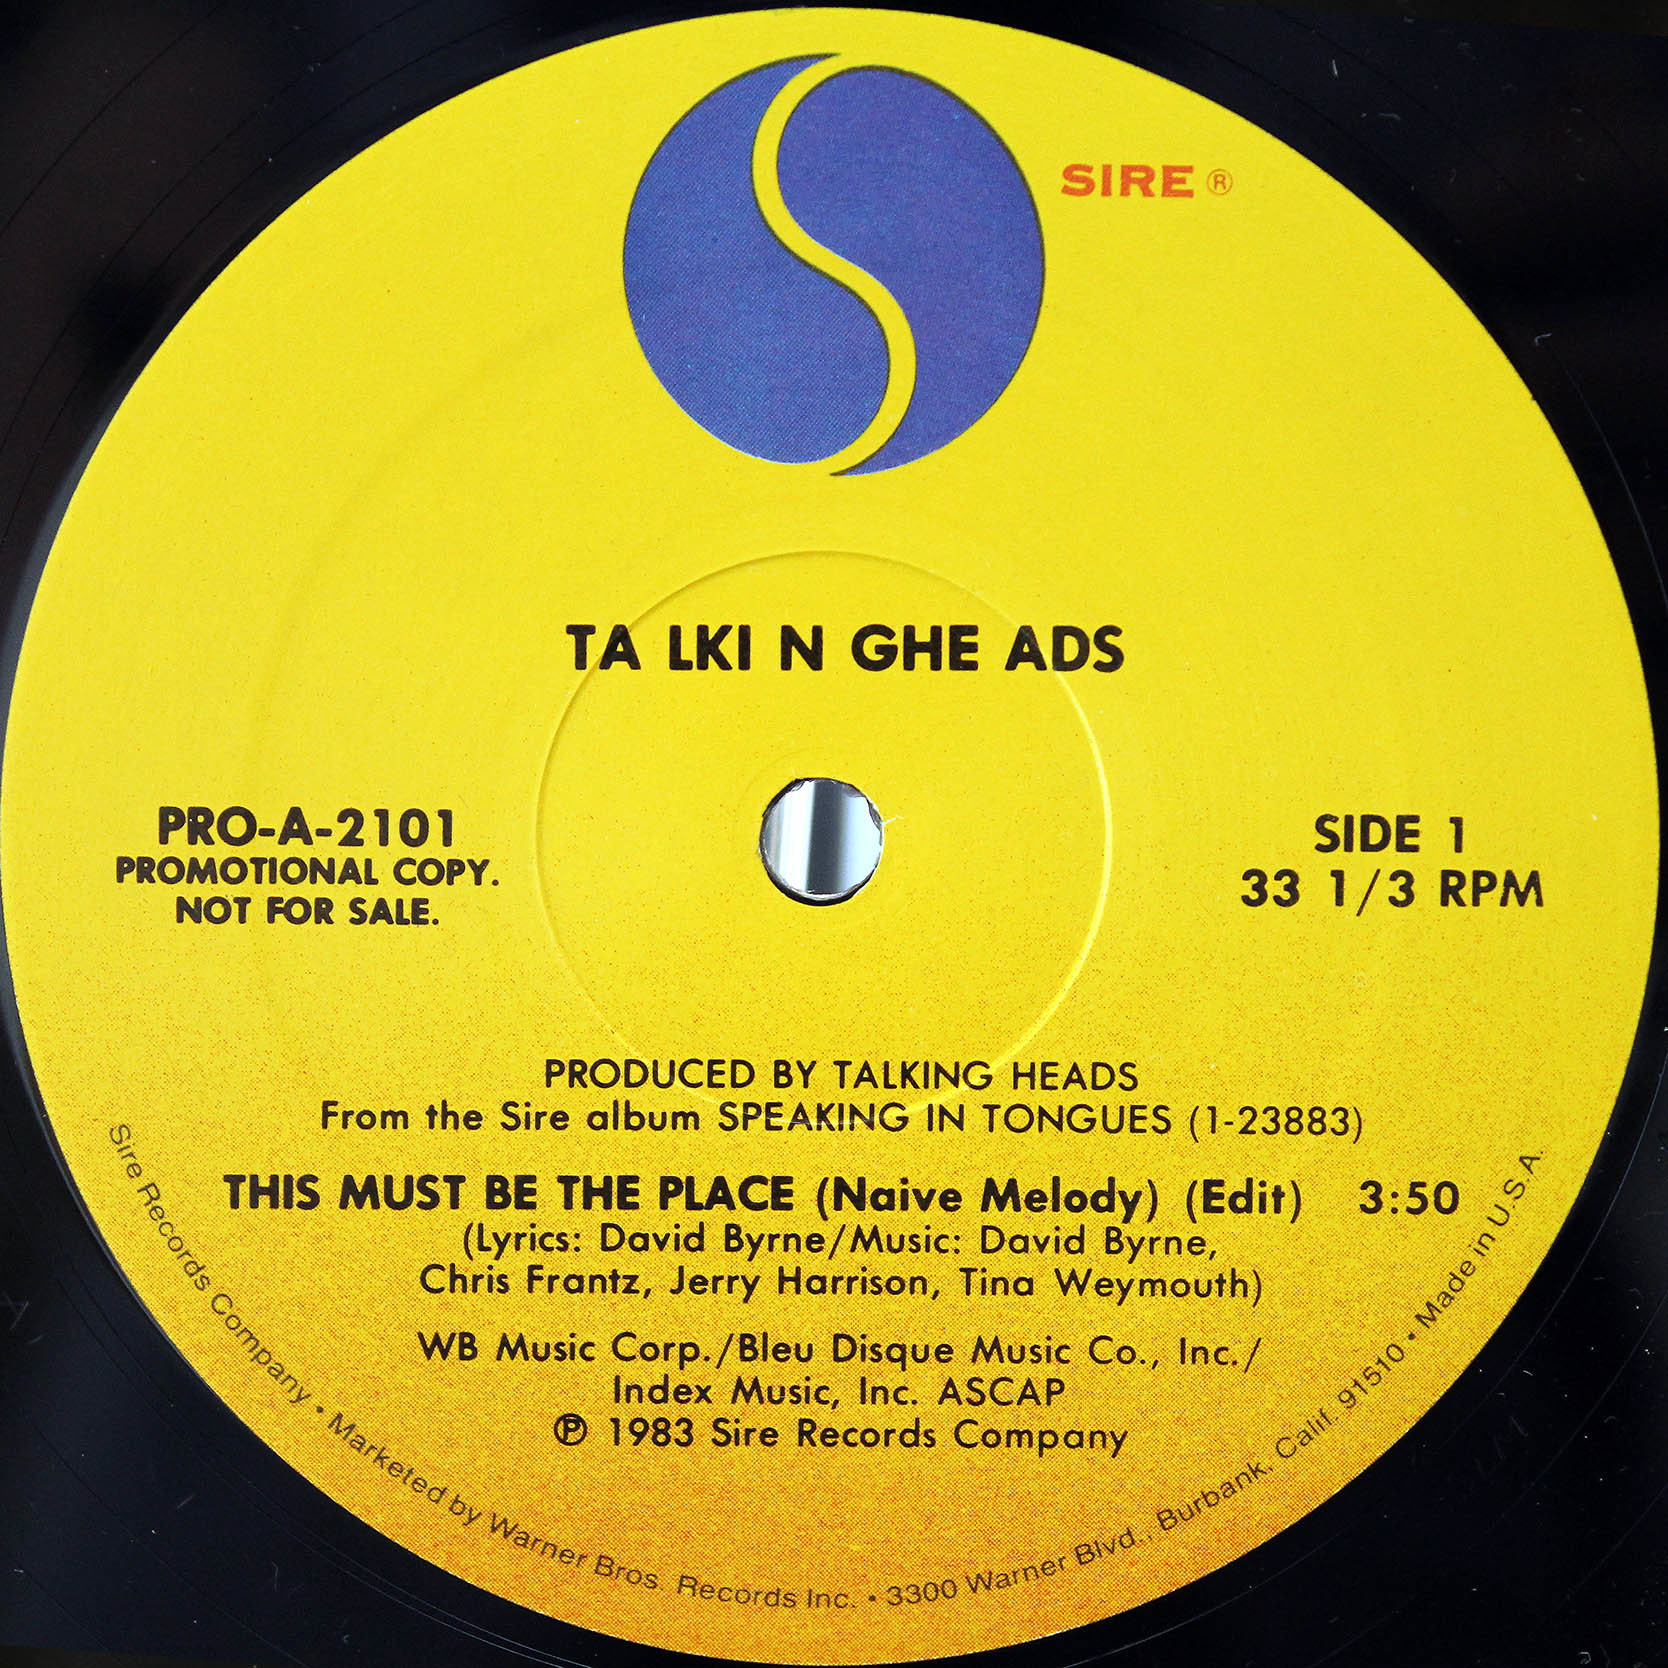 Talking Heads – This Must Be The Place 02